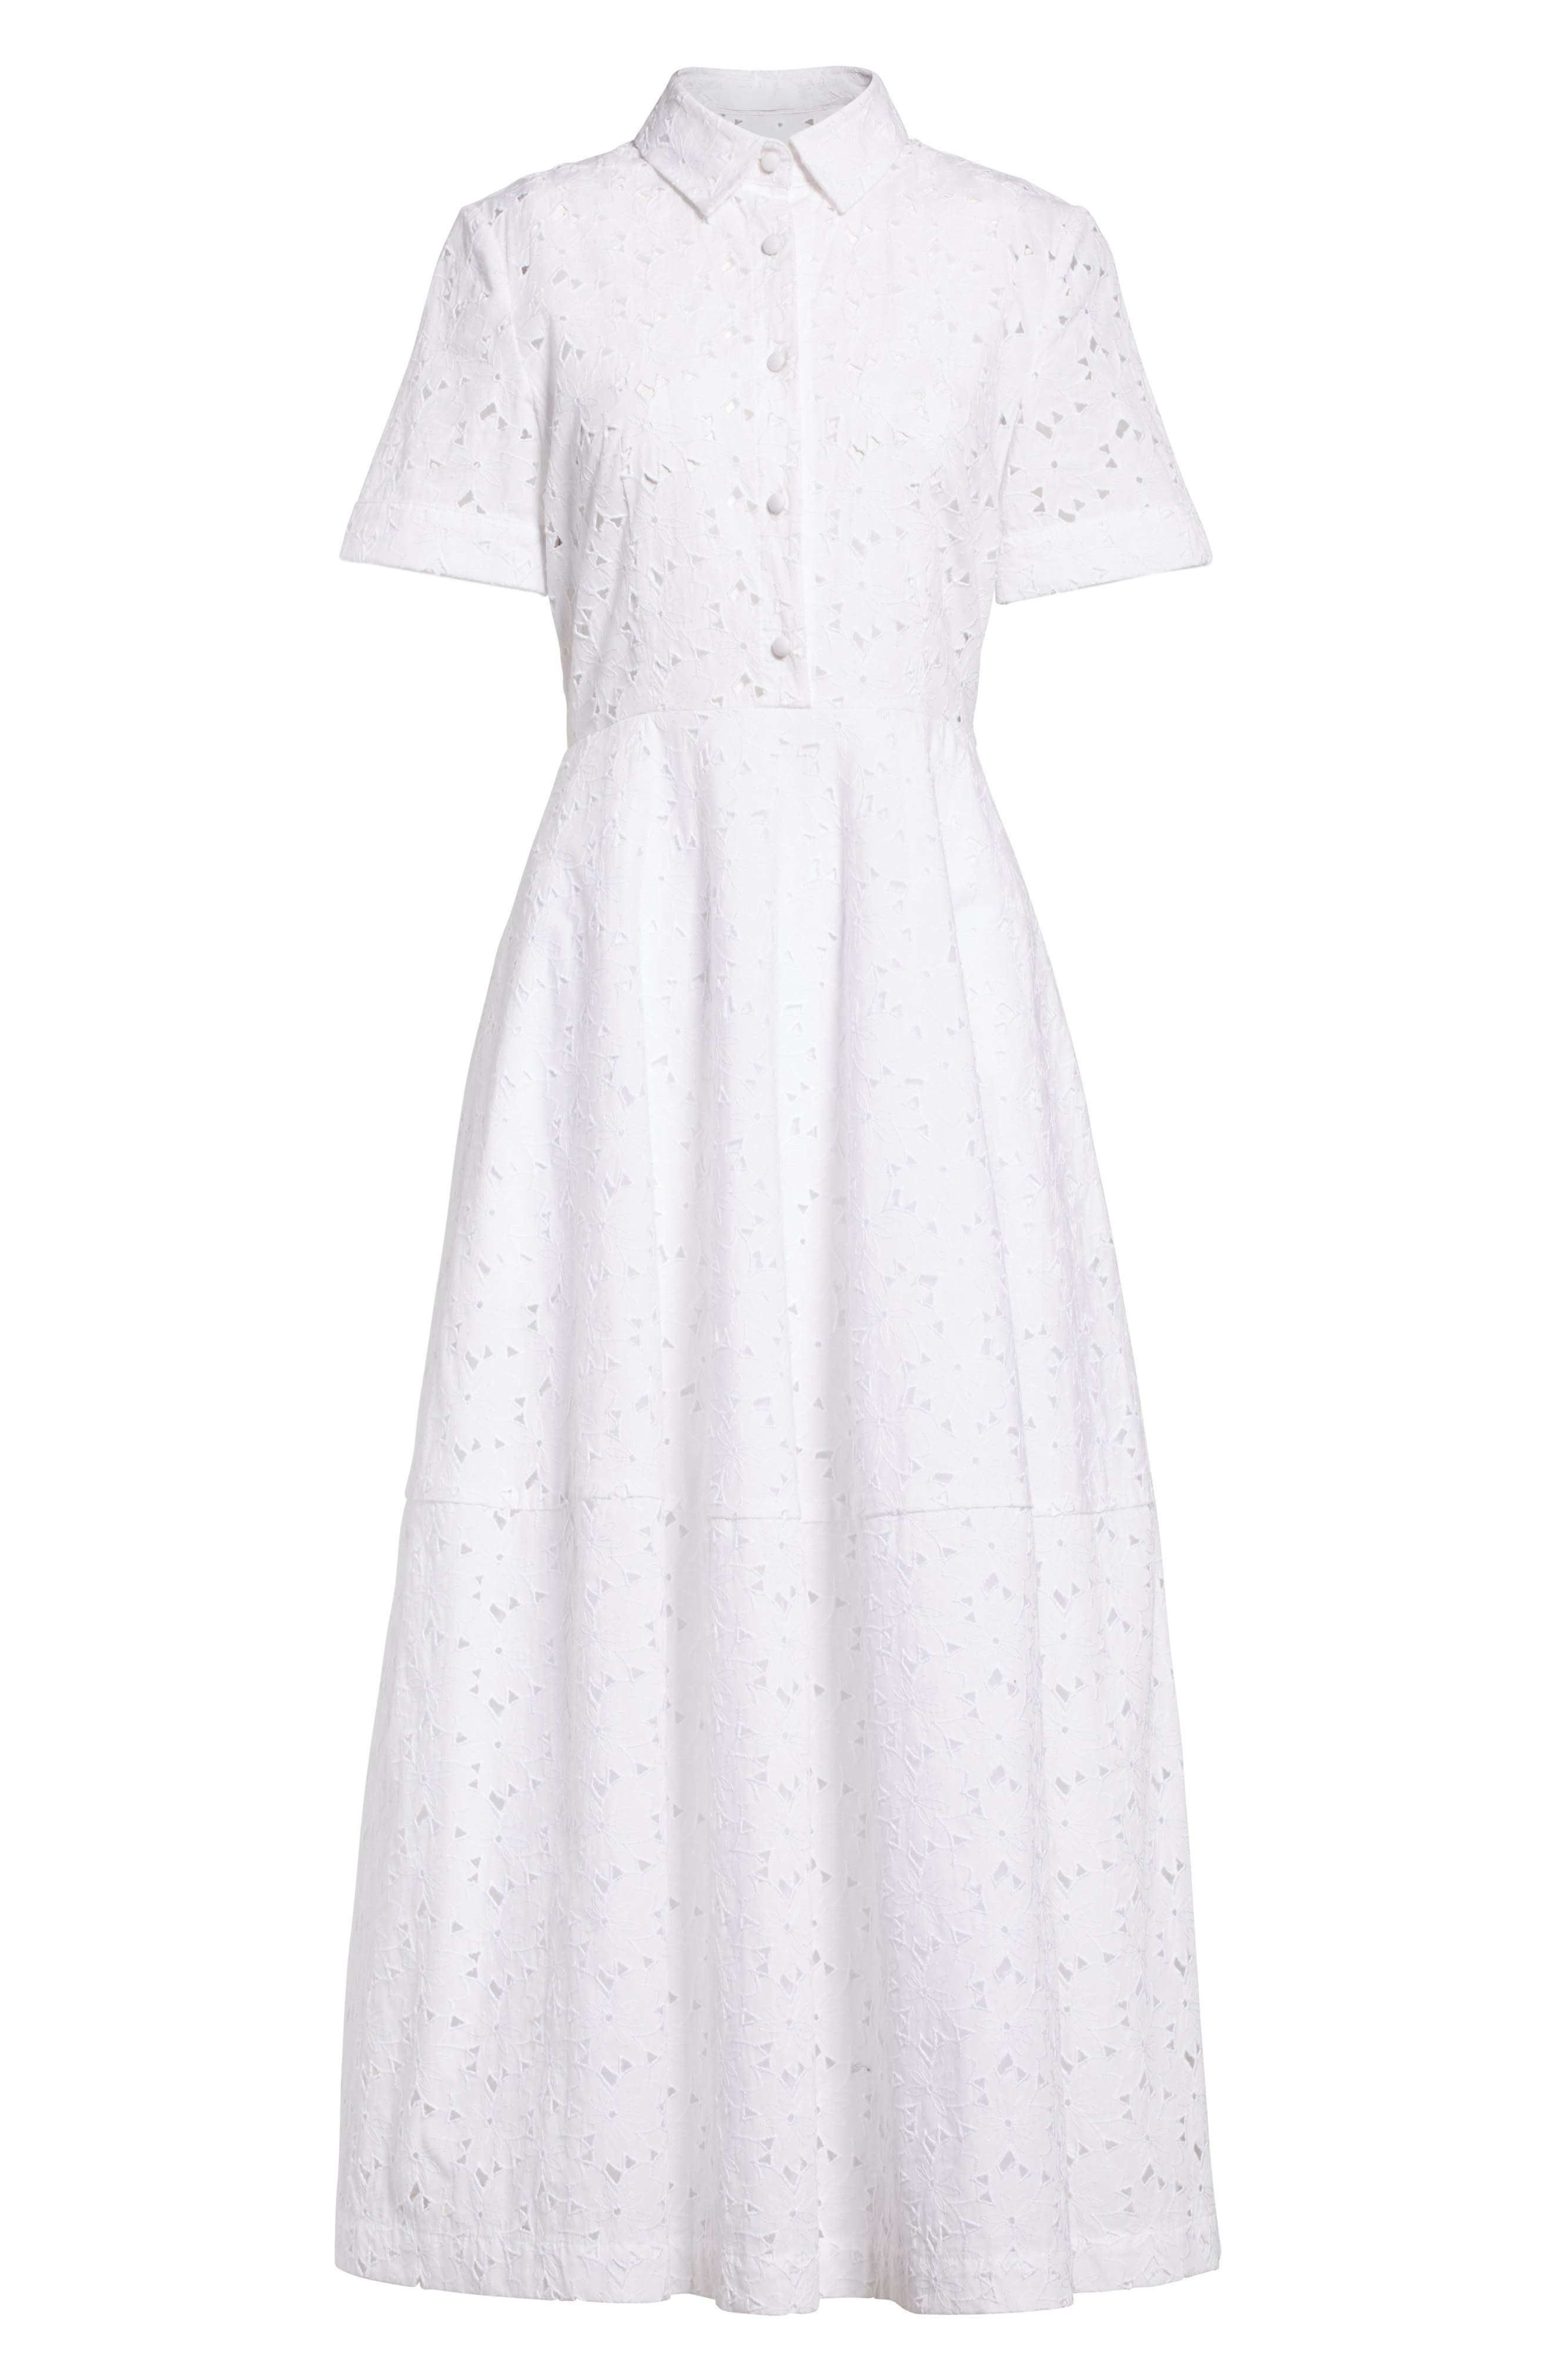 Cotton Broderie Anglaise Shirtdress,                             Alternate thumbnail 4, color,                             White